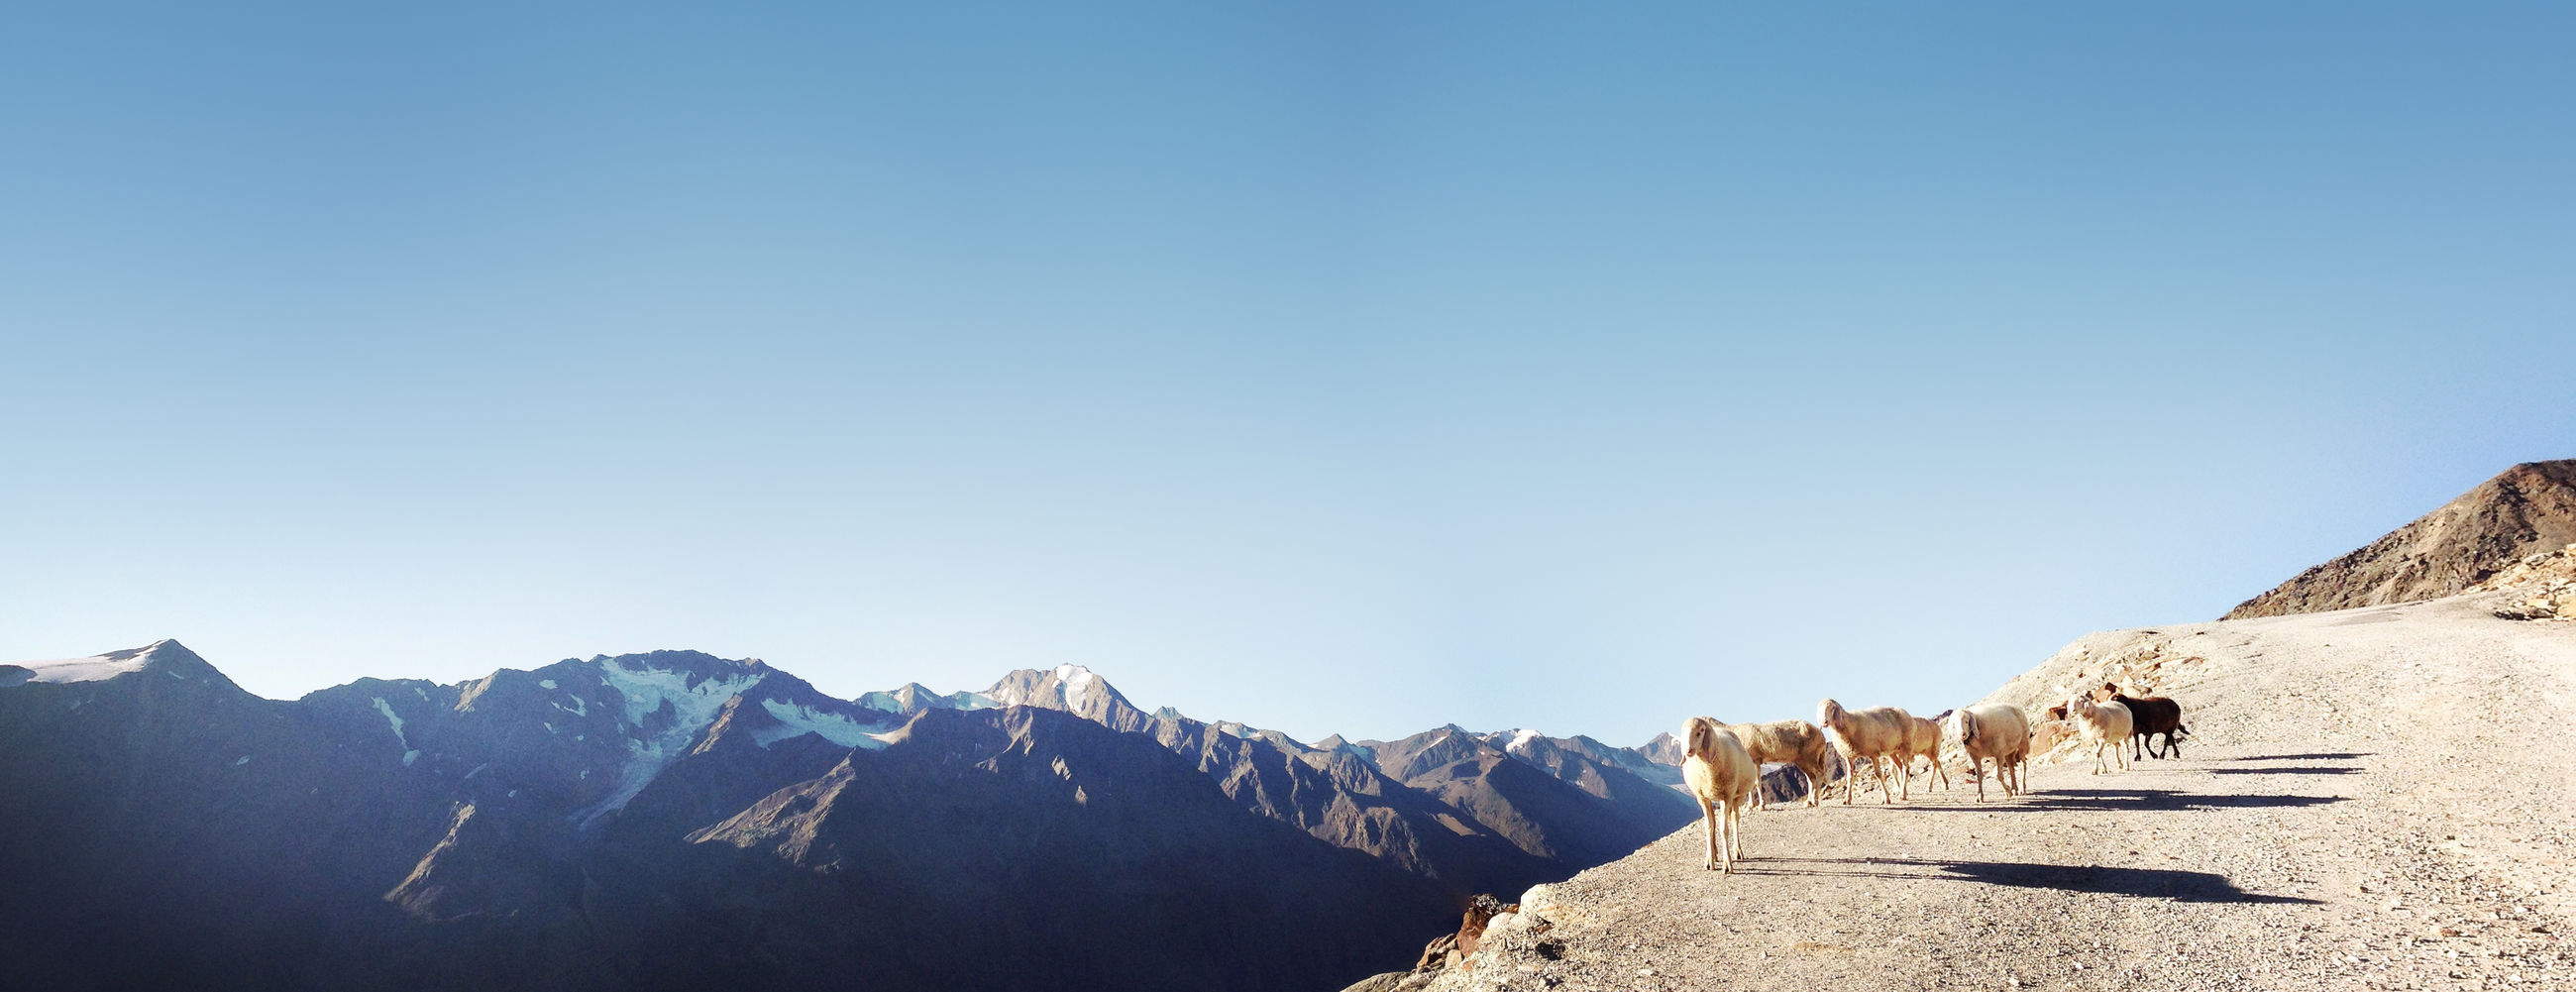 PANORAMIC SHOT OF SNOWCAPPED MOUNTAINS AGAINST CLEAR BLUE SKY